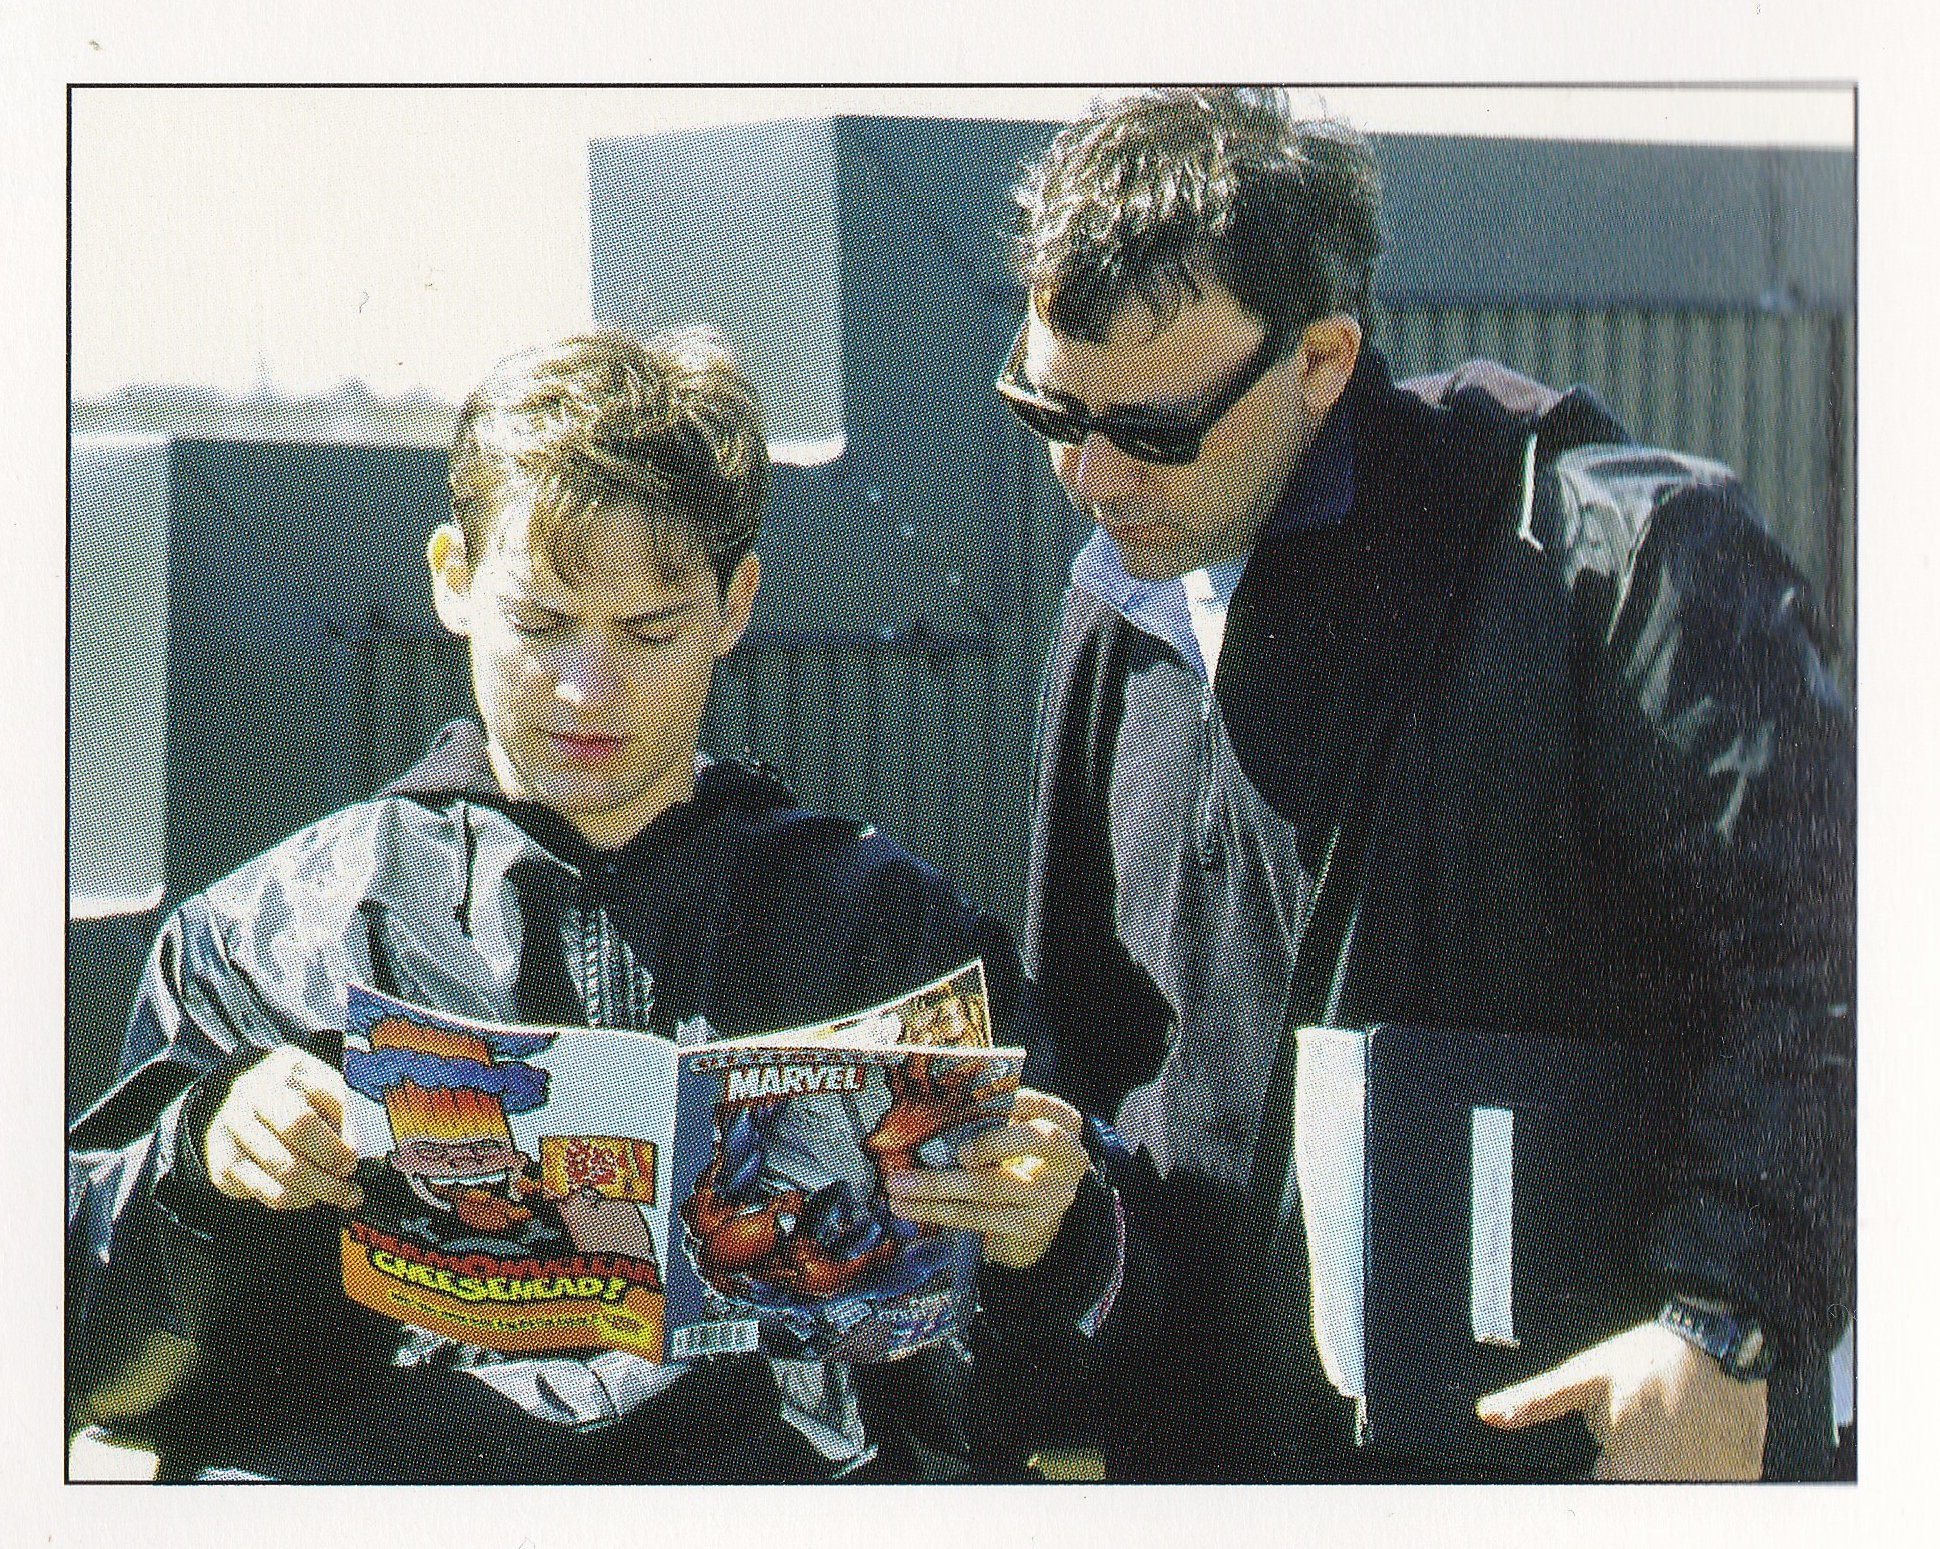 Sam Raimi and Tobey Maguire reading Spider-Man